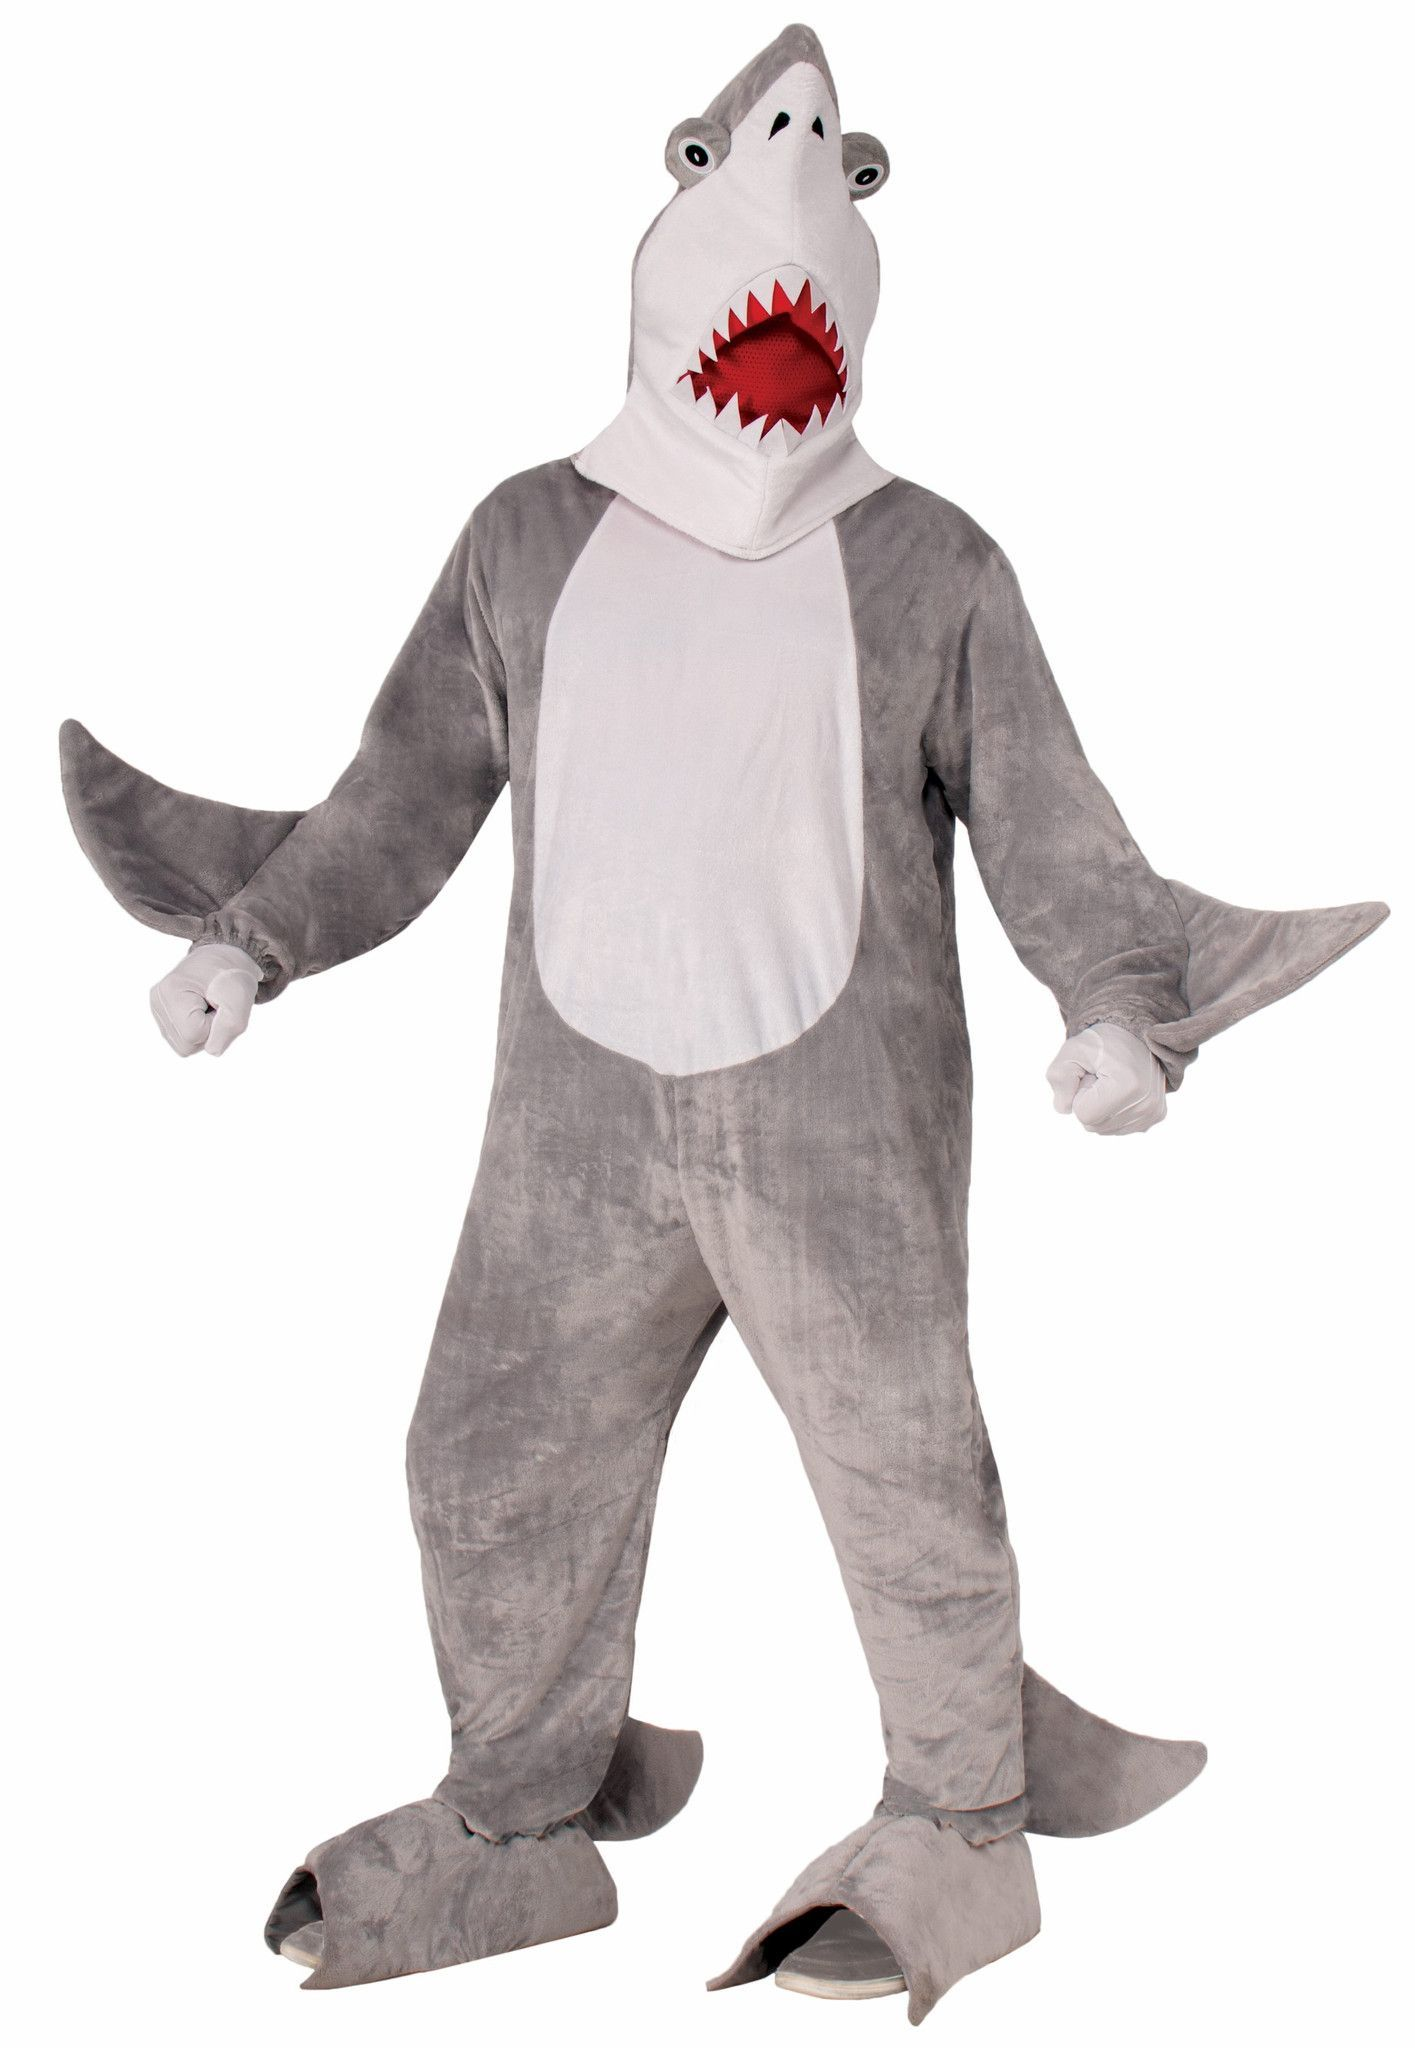 Plush Chomper the Shark Adult Costume One Size Fits Most  sc 1 st  Pinterest & Plush Chomper the Shark Adult Costume One Size Fits Most | Shark and ...